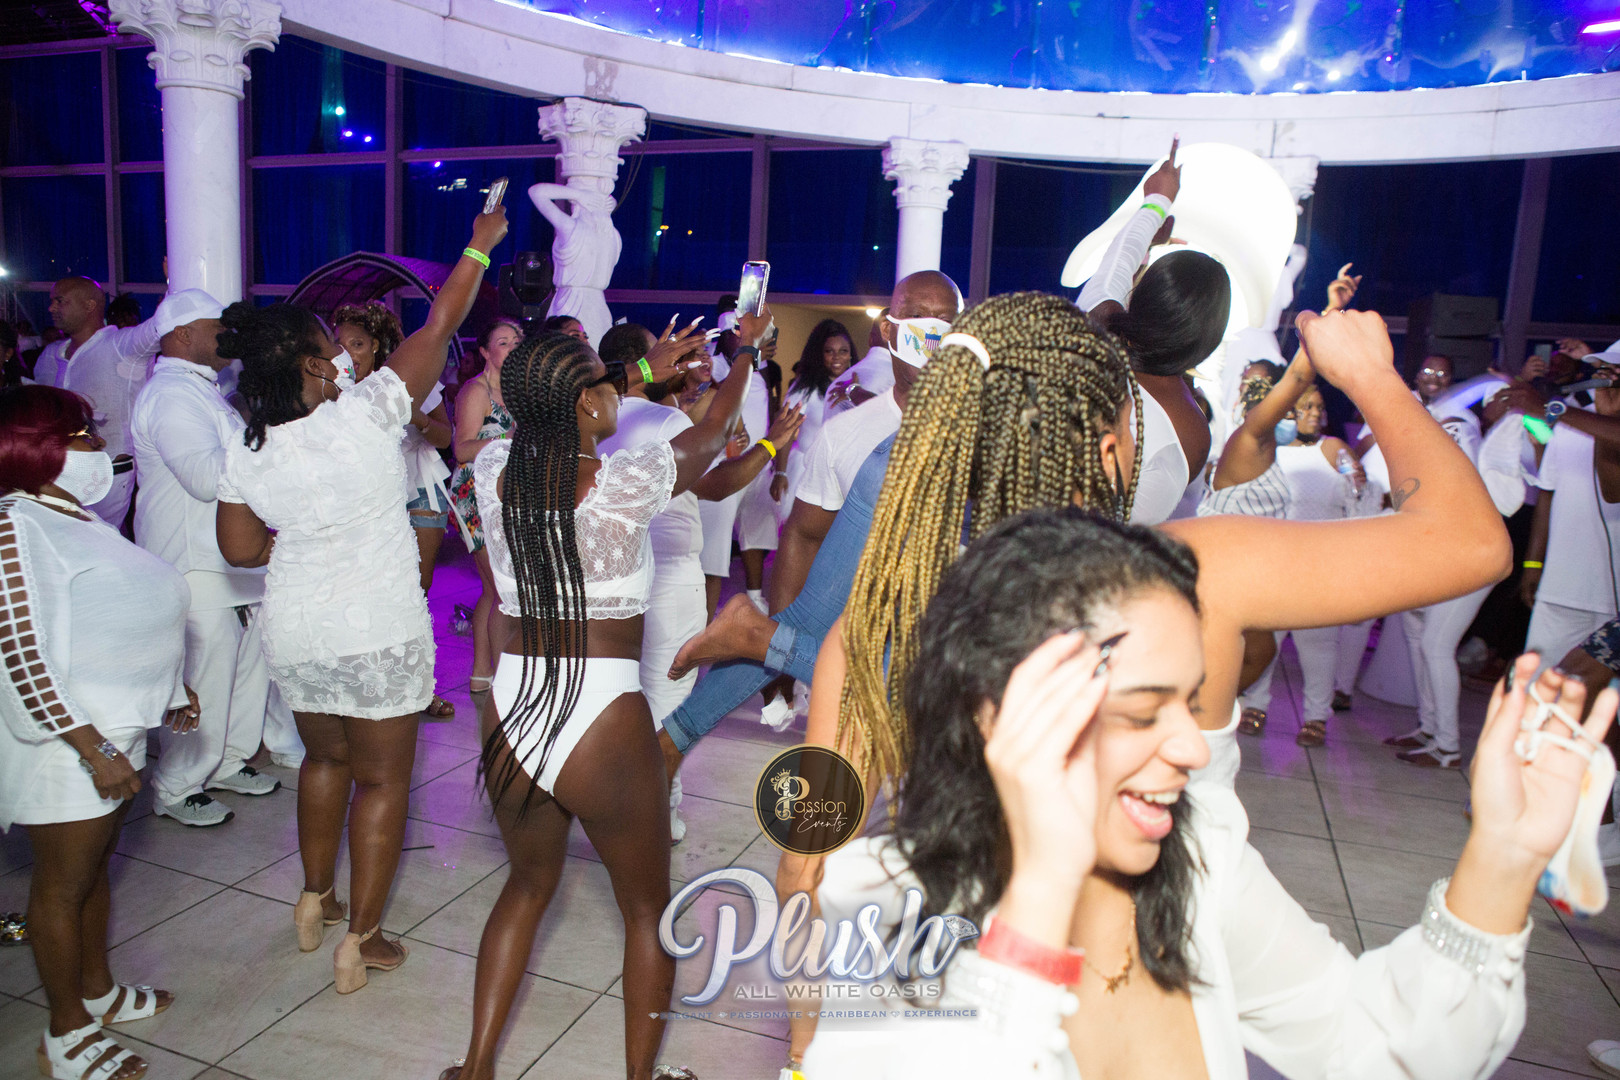 Soca_Passion-PLUSH 9241.JPG